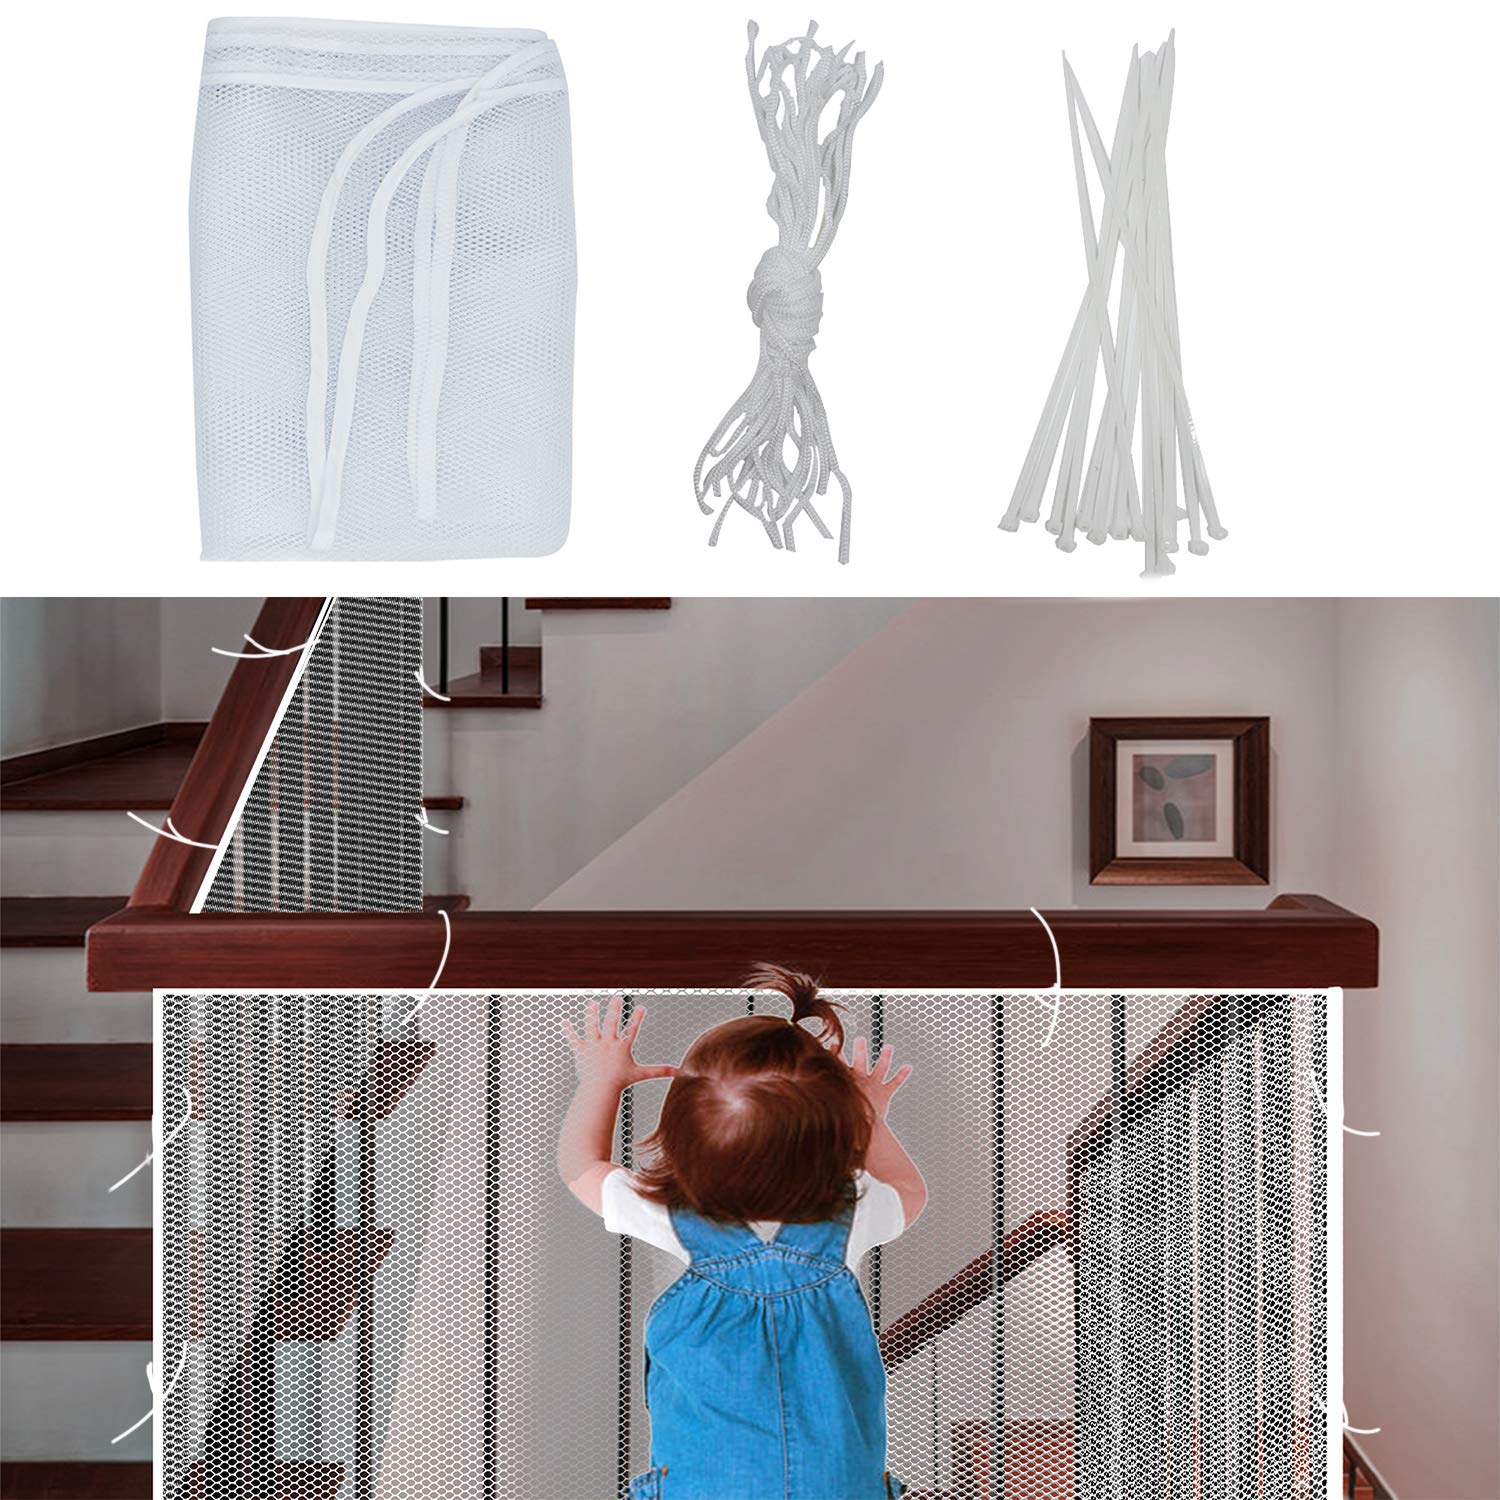 LiXiongBao Child Safety Net Kids Stairs Safety Railing & Banister Guard Baby Thick Hard Mesh Netting Protection Rail Balcony Stair Fence Baby Fence Stairwell Net Decoration (10ft x 2.5ft)